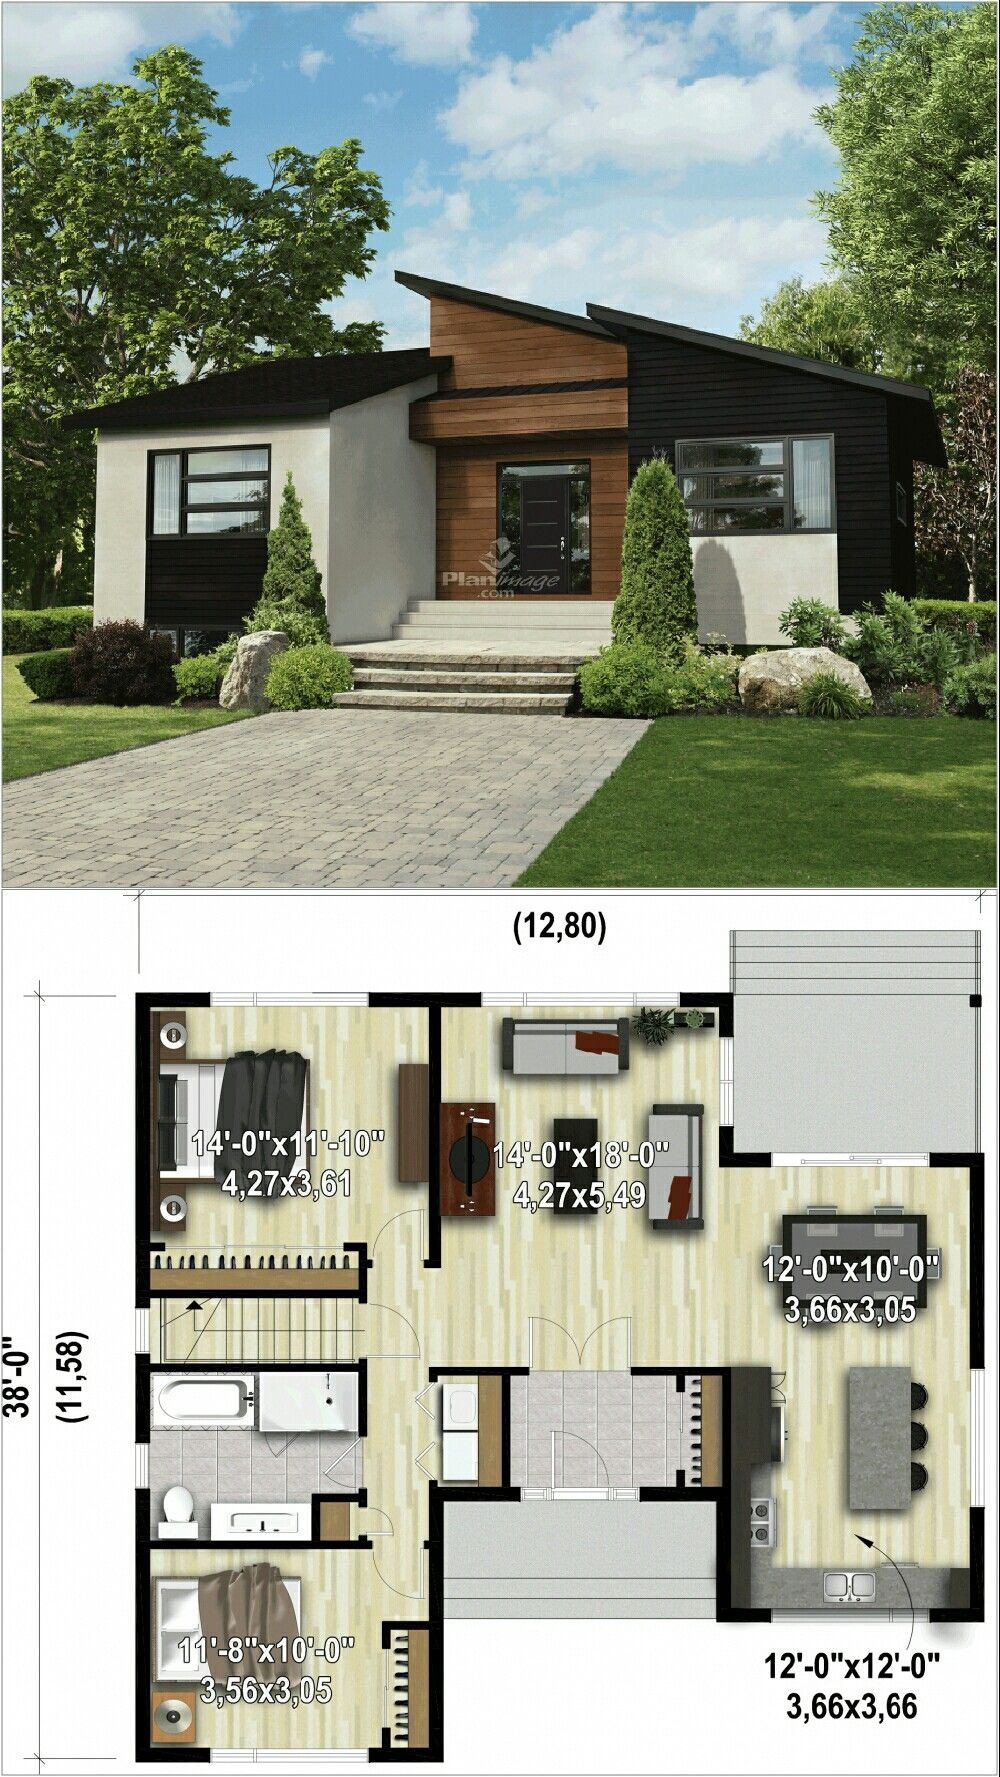 California Modern House Plans California Houses In 2020 Bungalow House Design House Construction Plan Sims House Plans